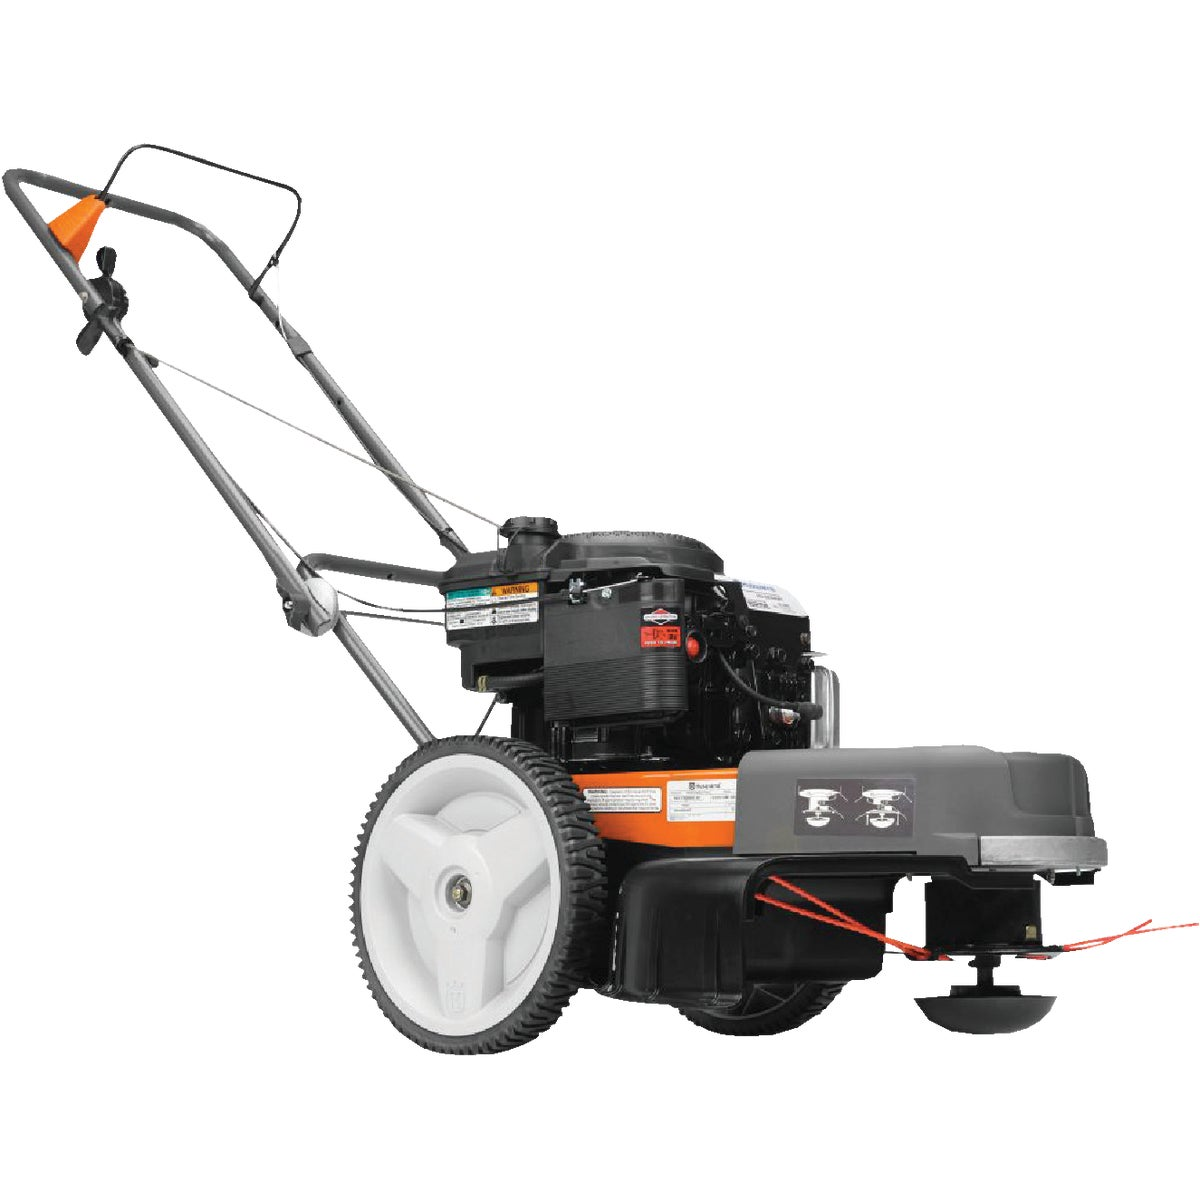 "22"" HIGH WHEELED TRIMMER - 961730003 by Husqvarna Outdoor"